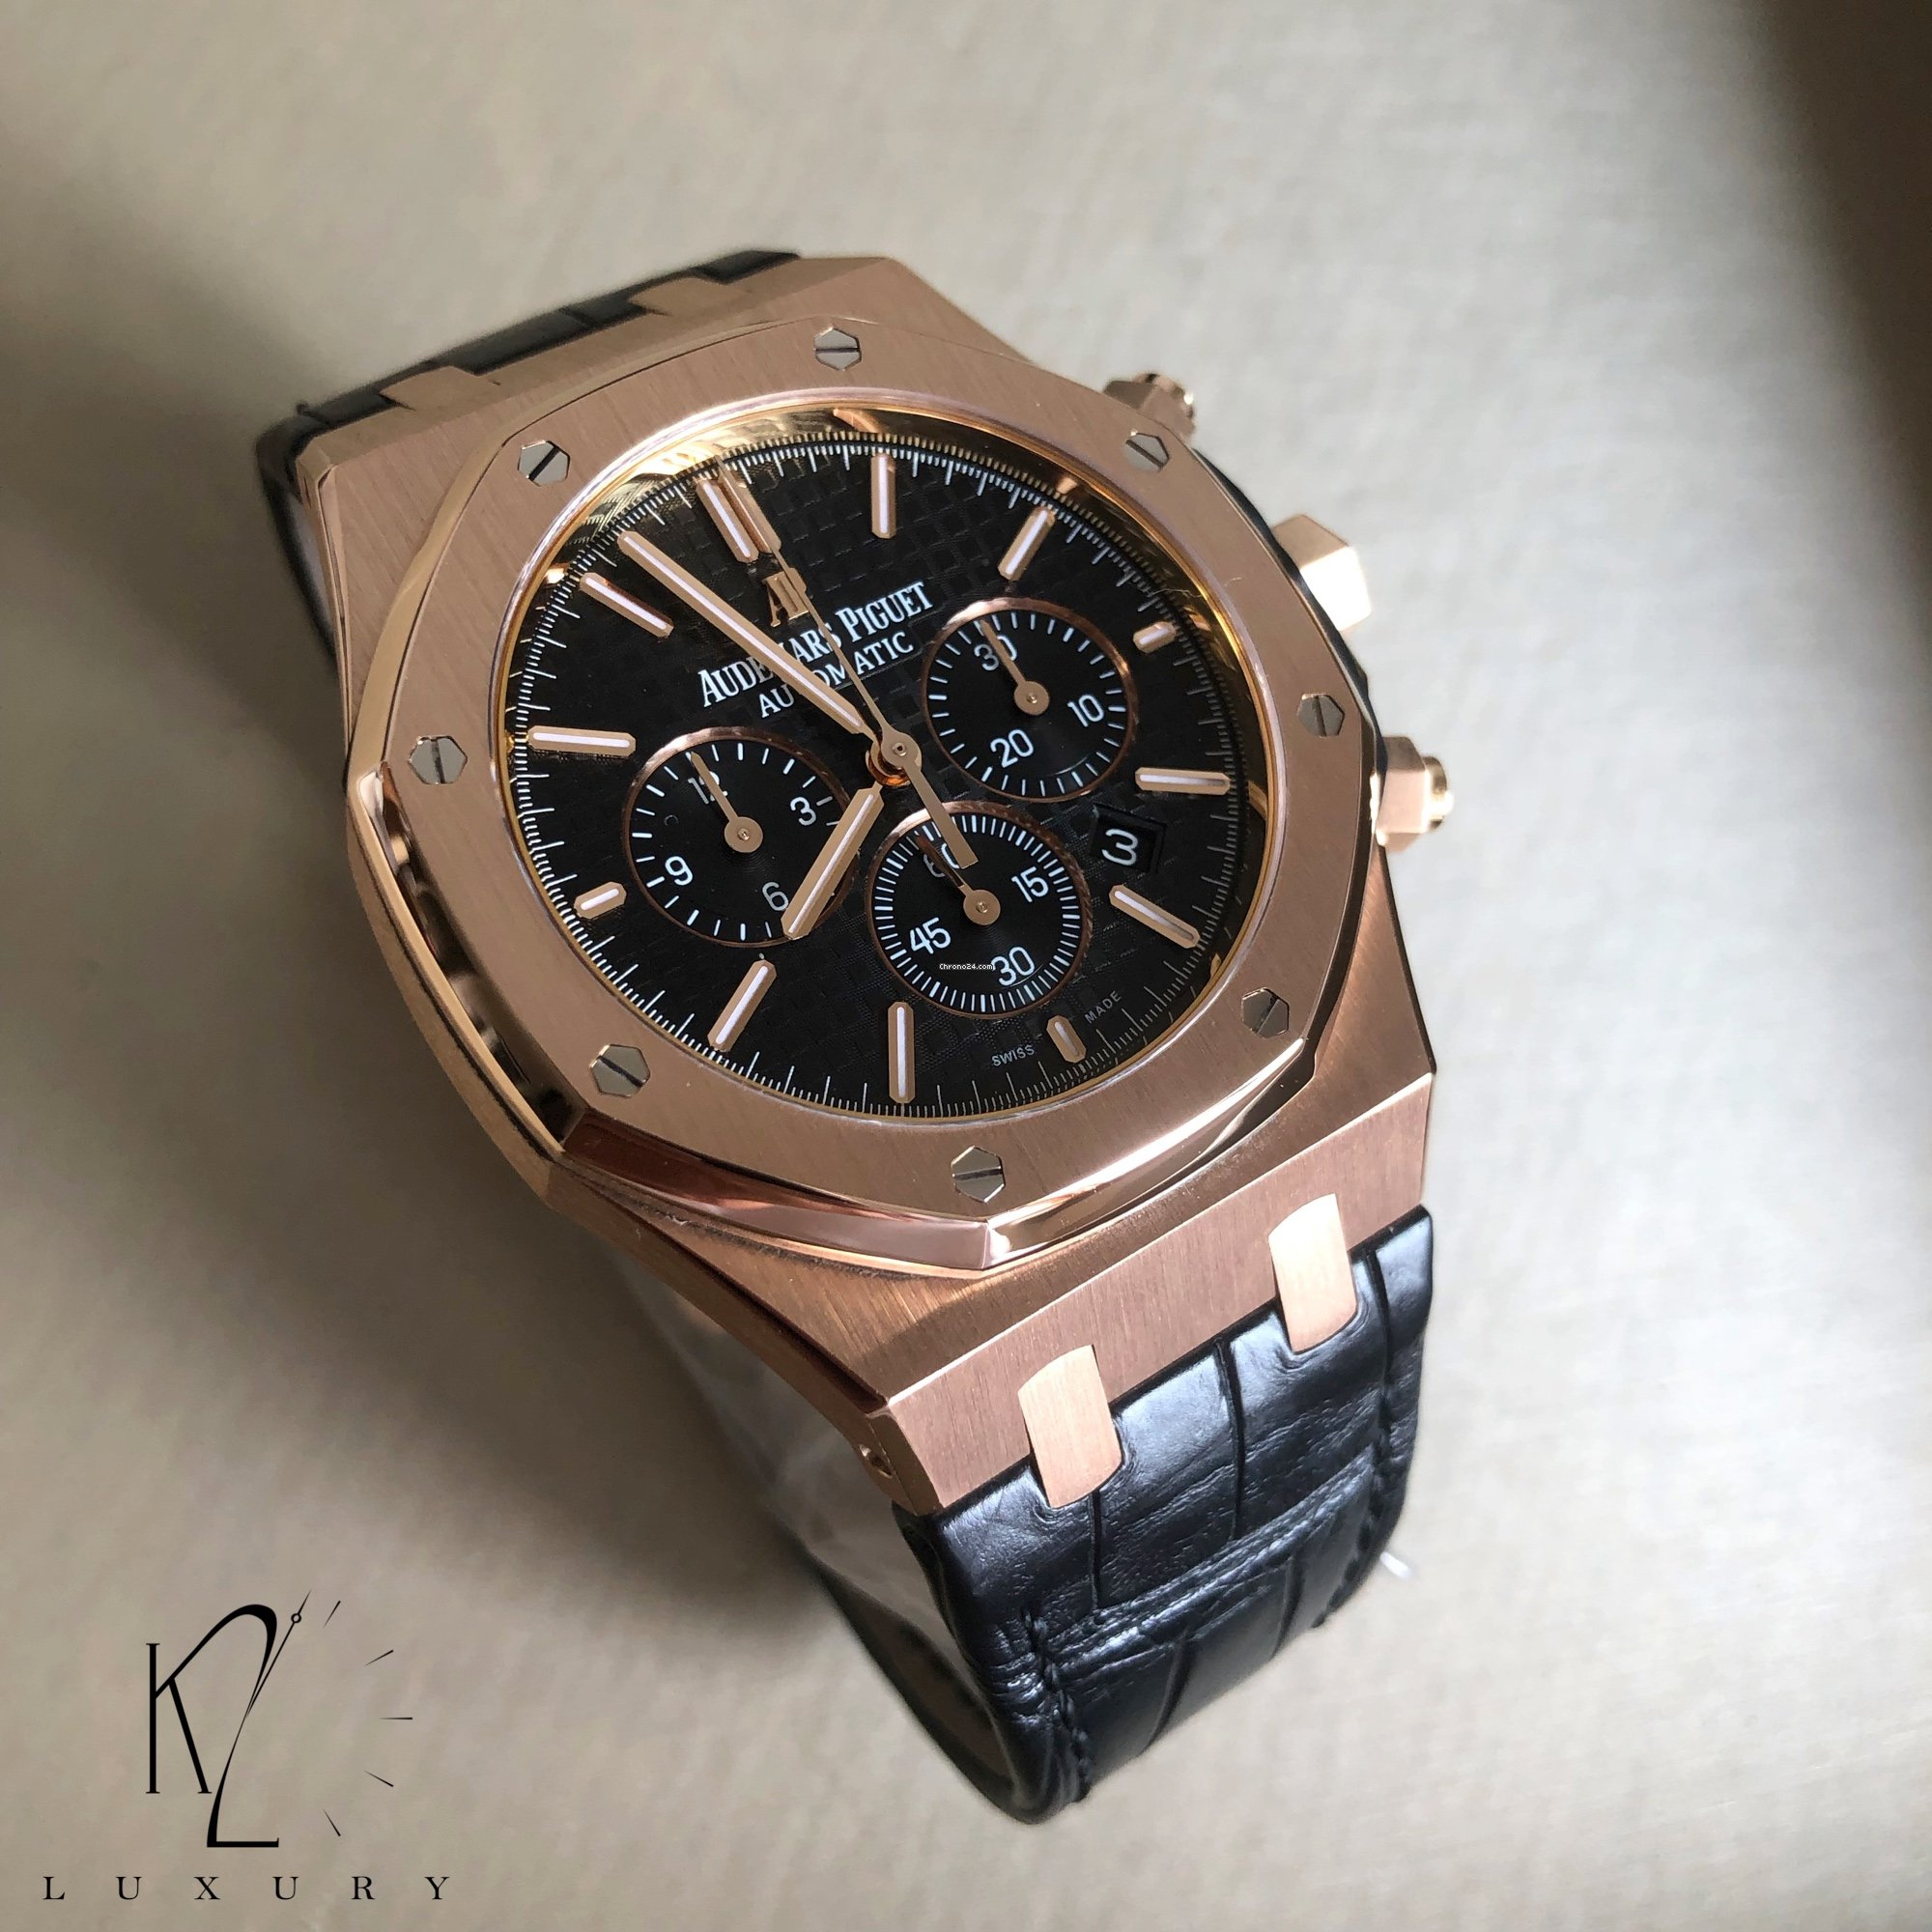 Audemars Piguet Royal Oak Chronograph In Rose Gold With Black For